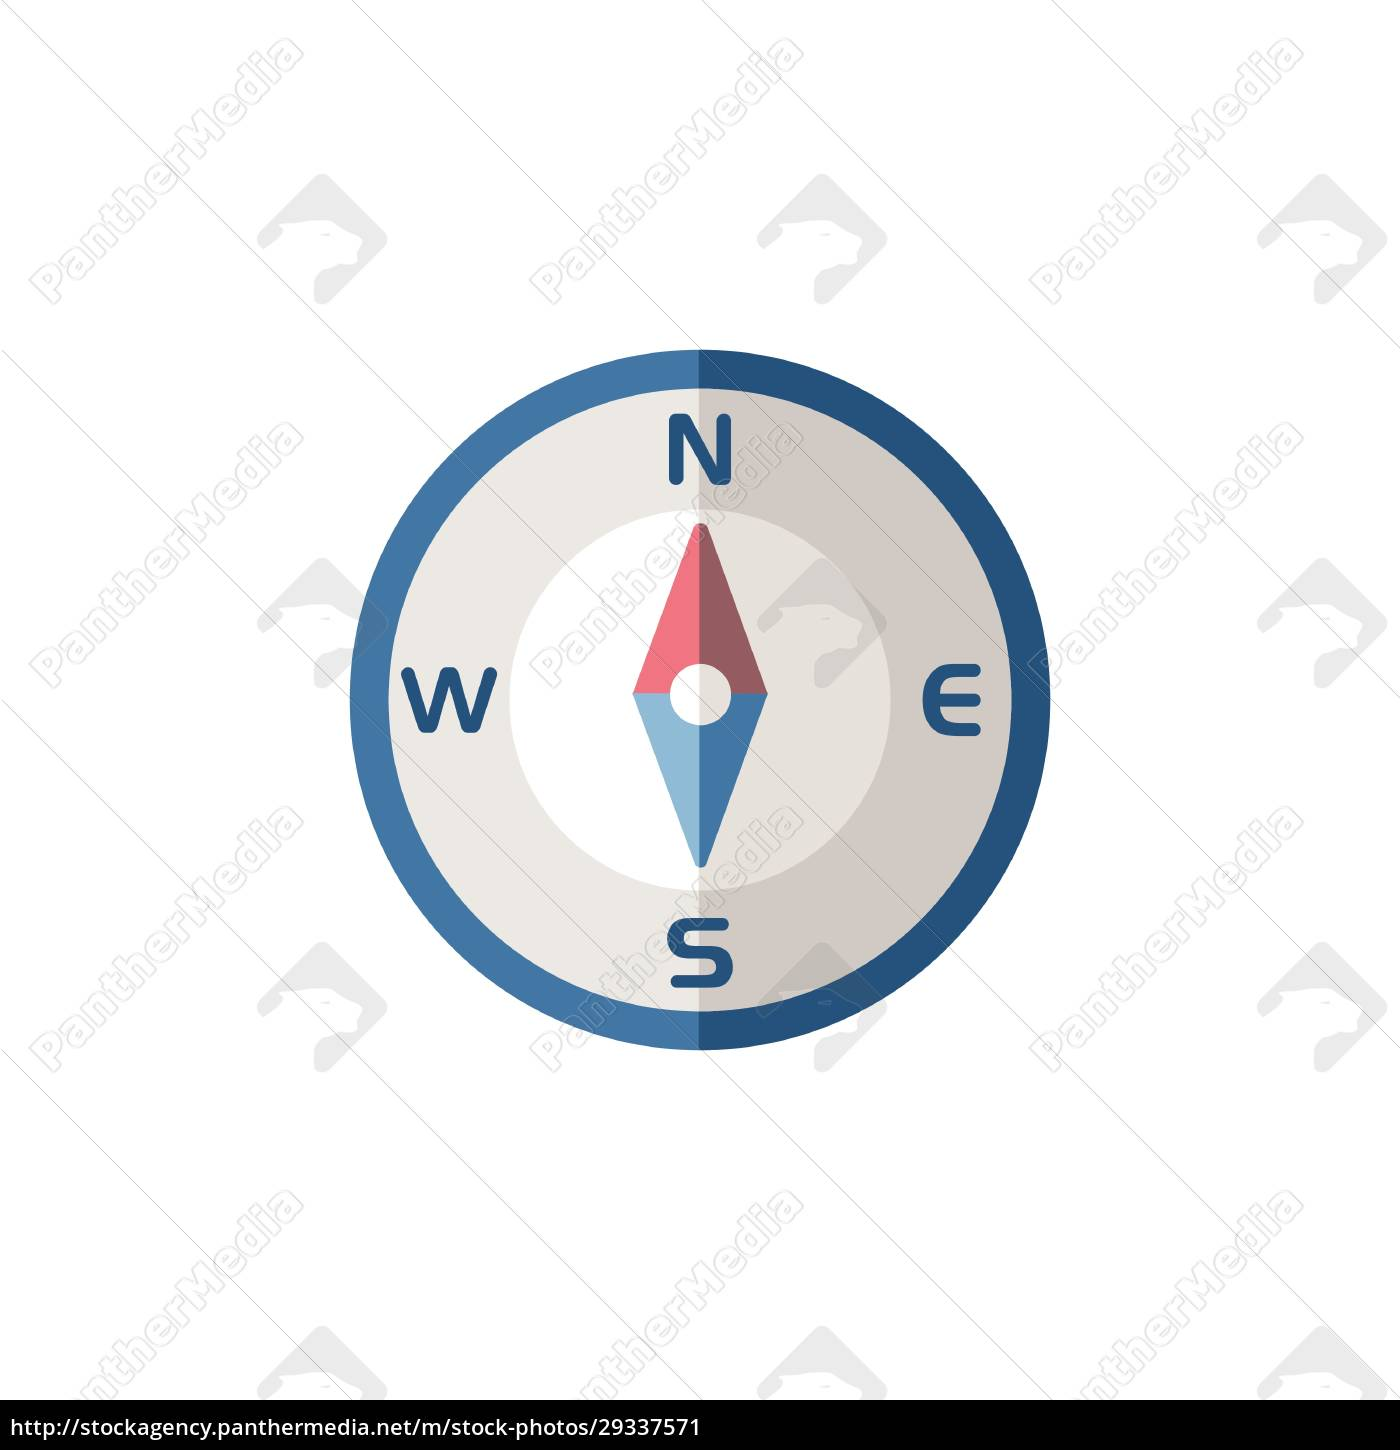 compass, north, direction., flat, icon., isolated - 29337571